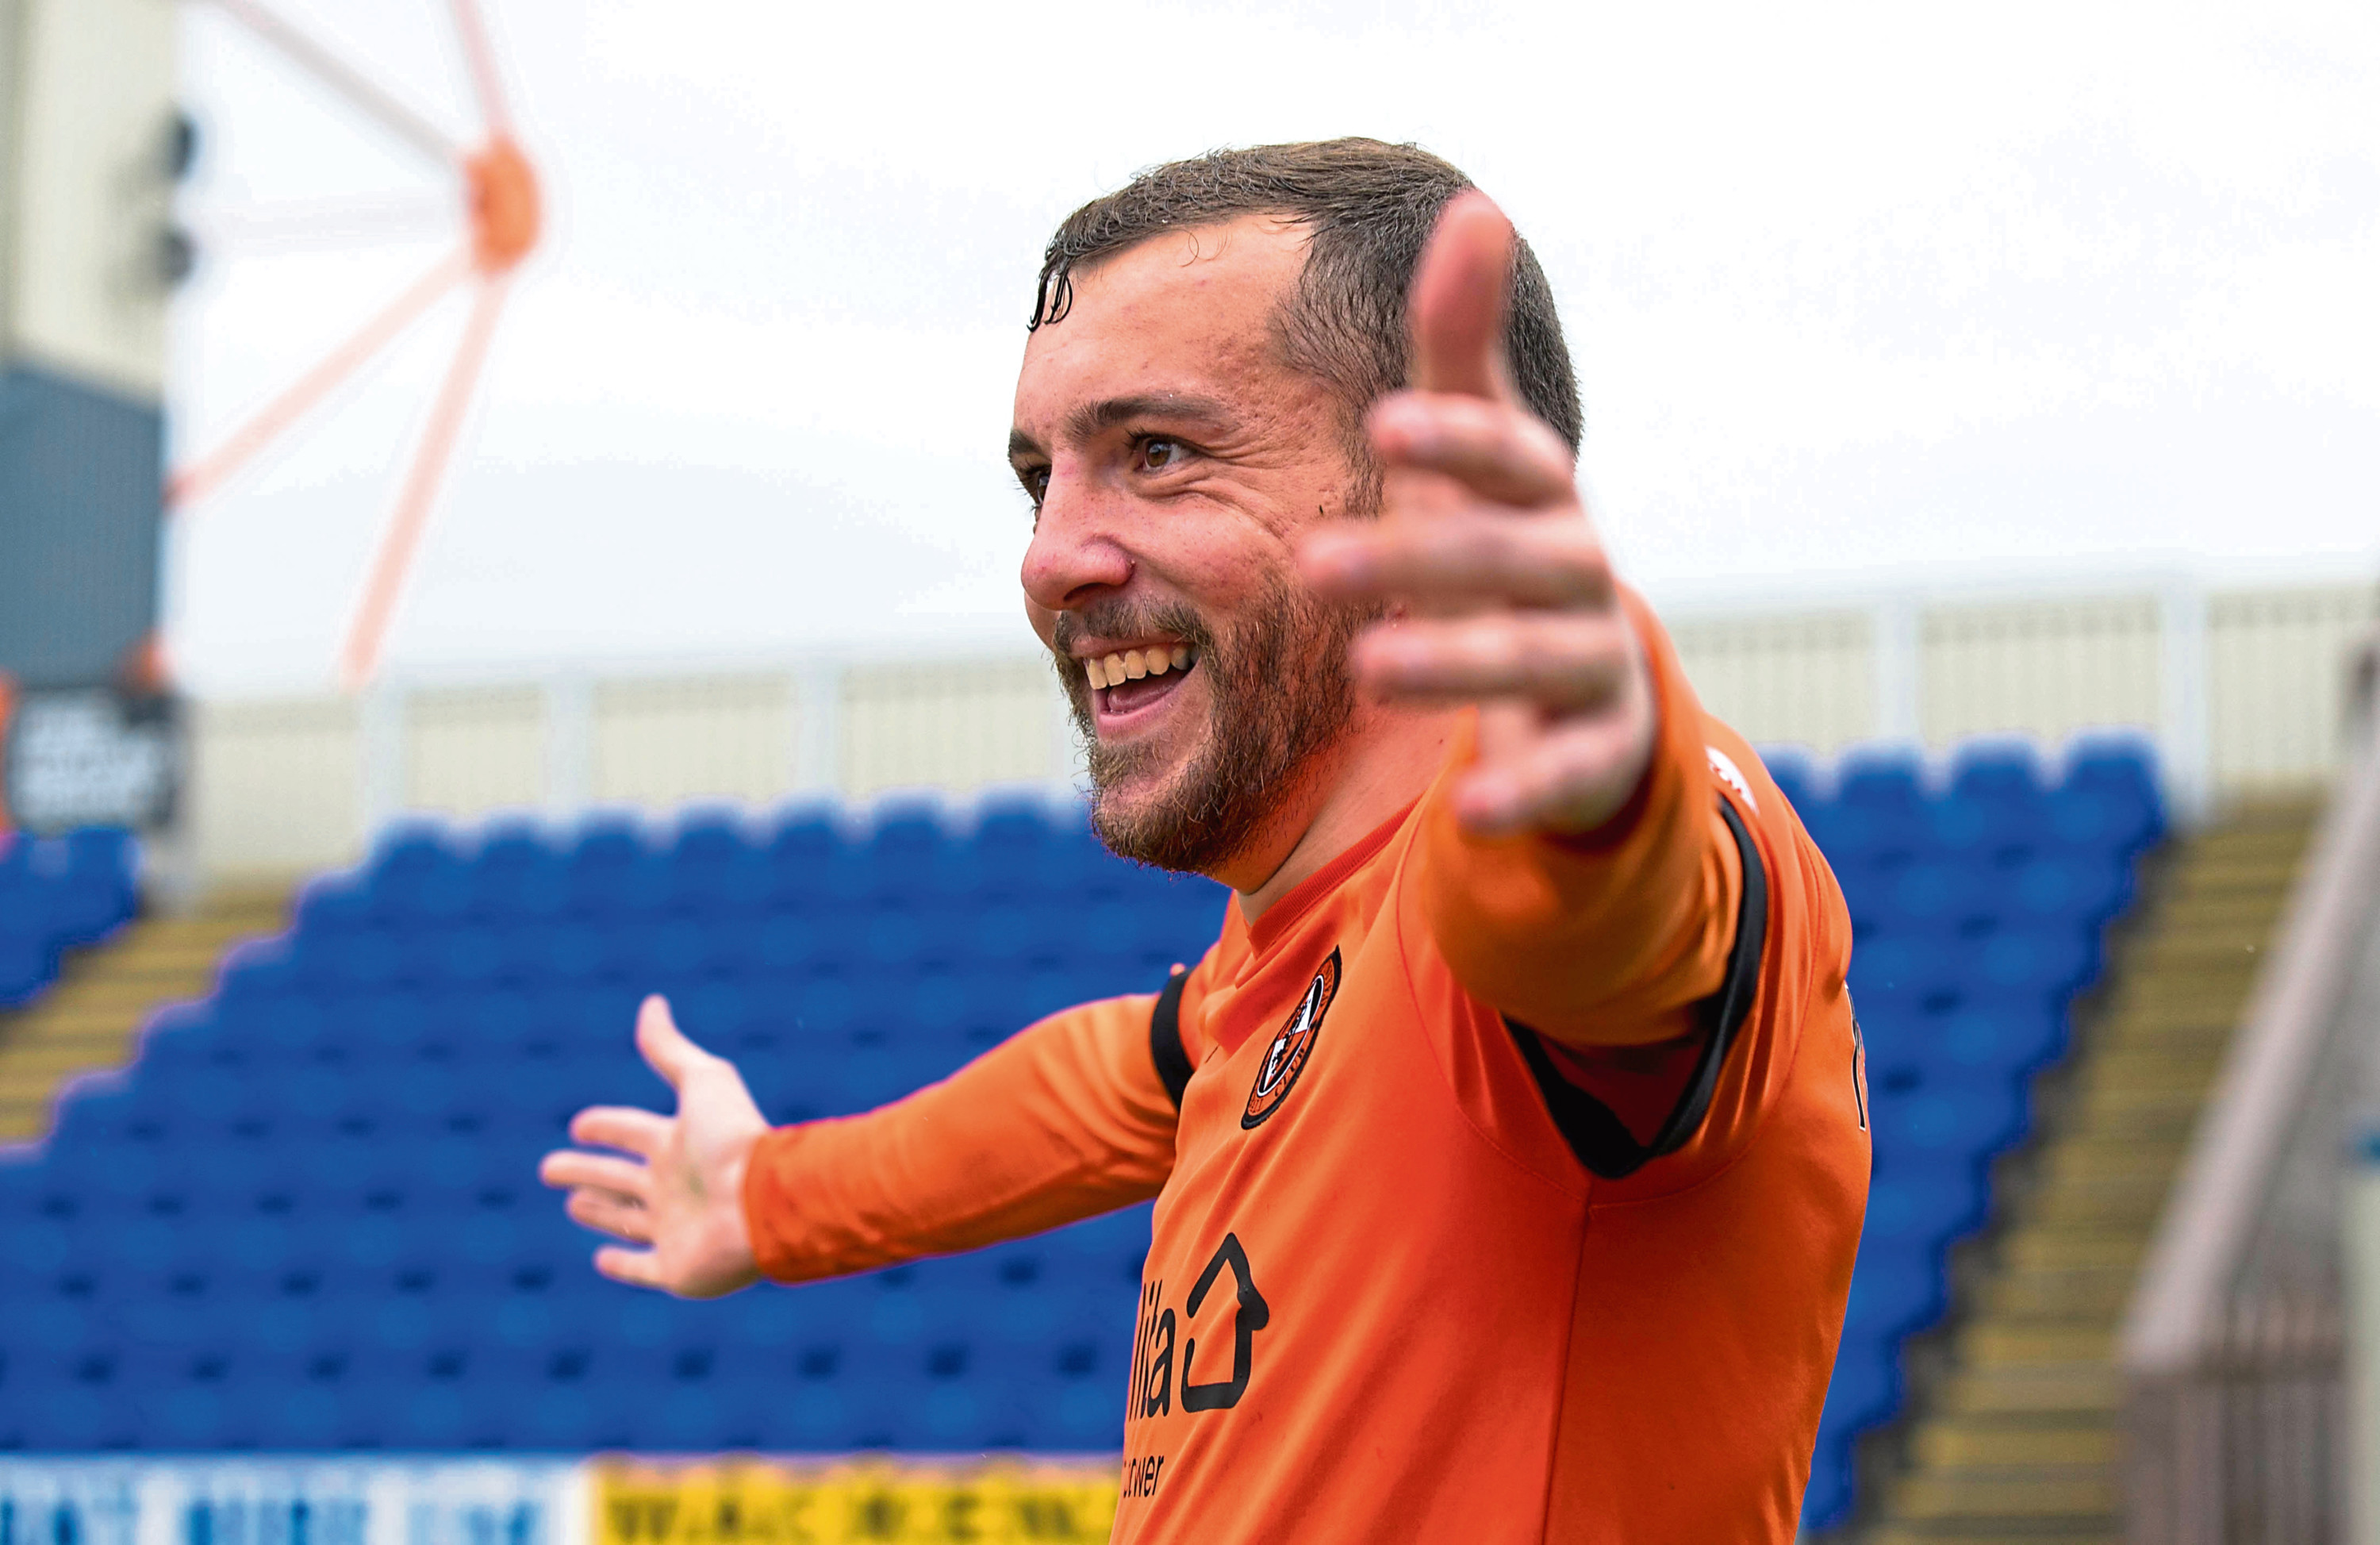 Dundee United's Paul McMullan celebrates his goal to make it 2-0 at Inverness.